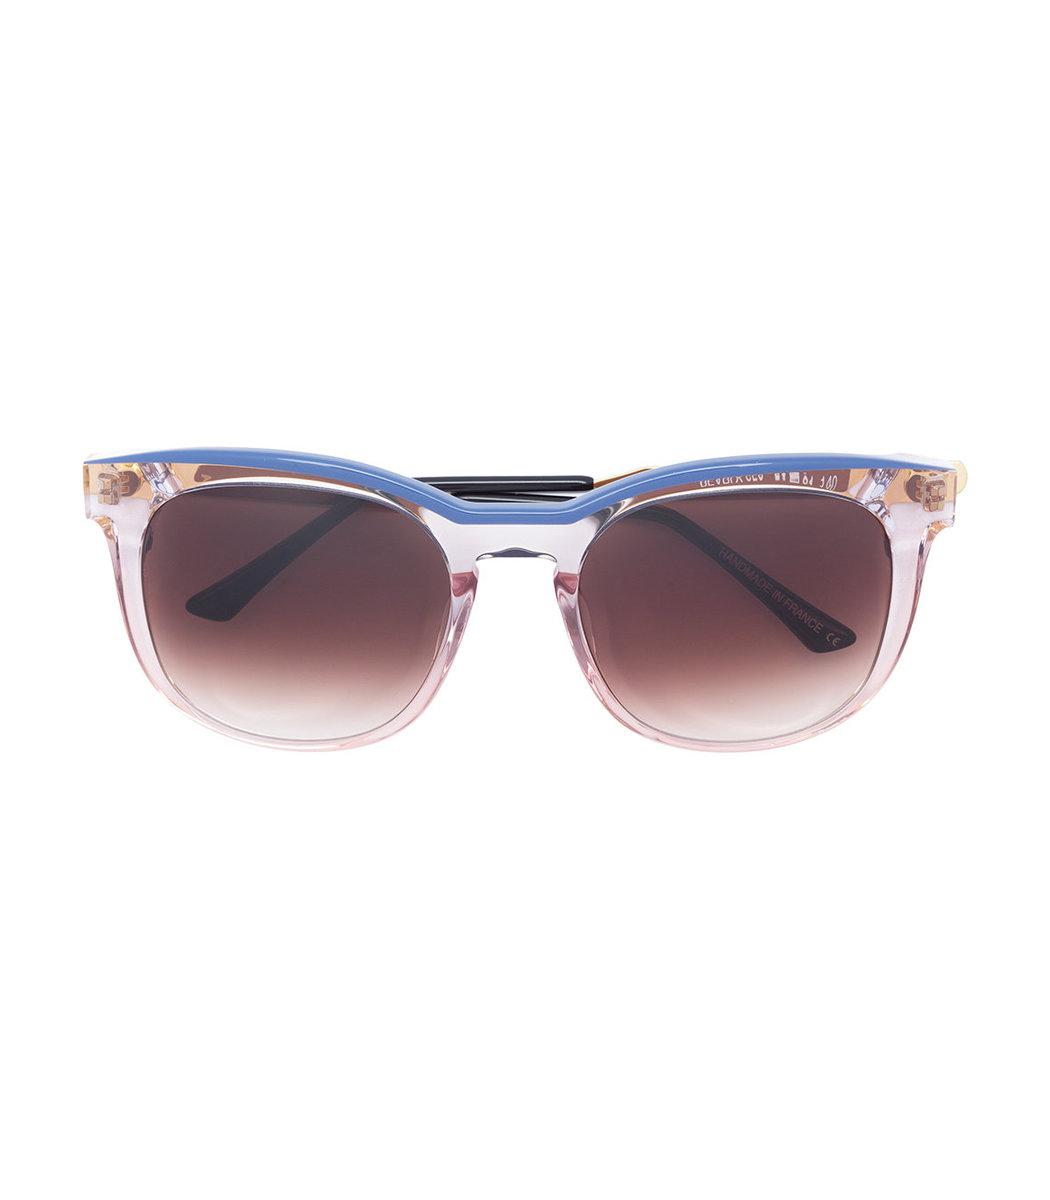 5da43950cd Lyst - Thierry Lasry Blue pink Pearly 650 Sunglasses in Pink